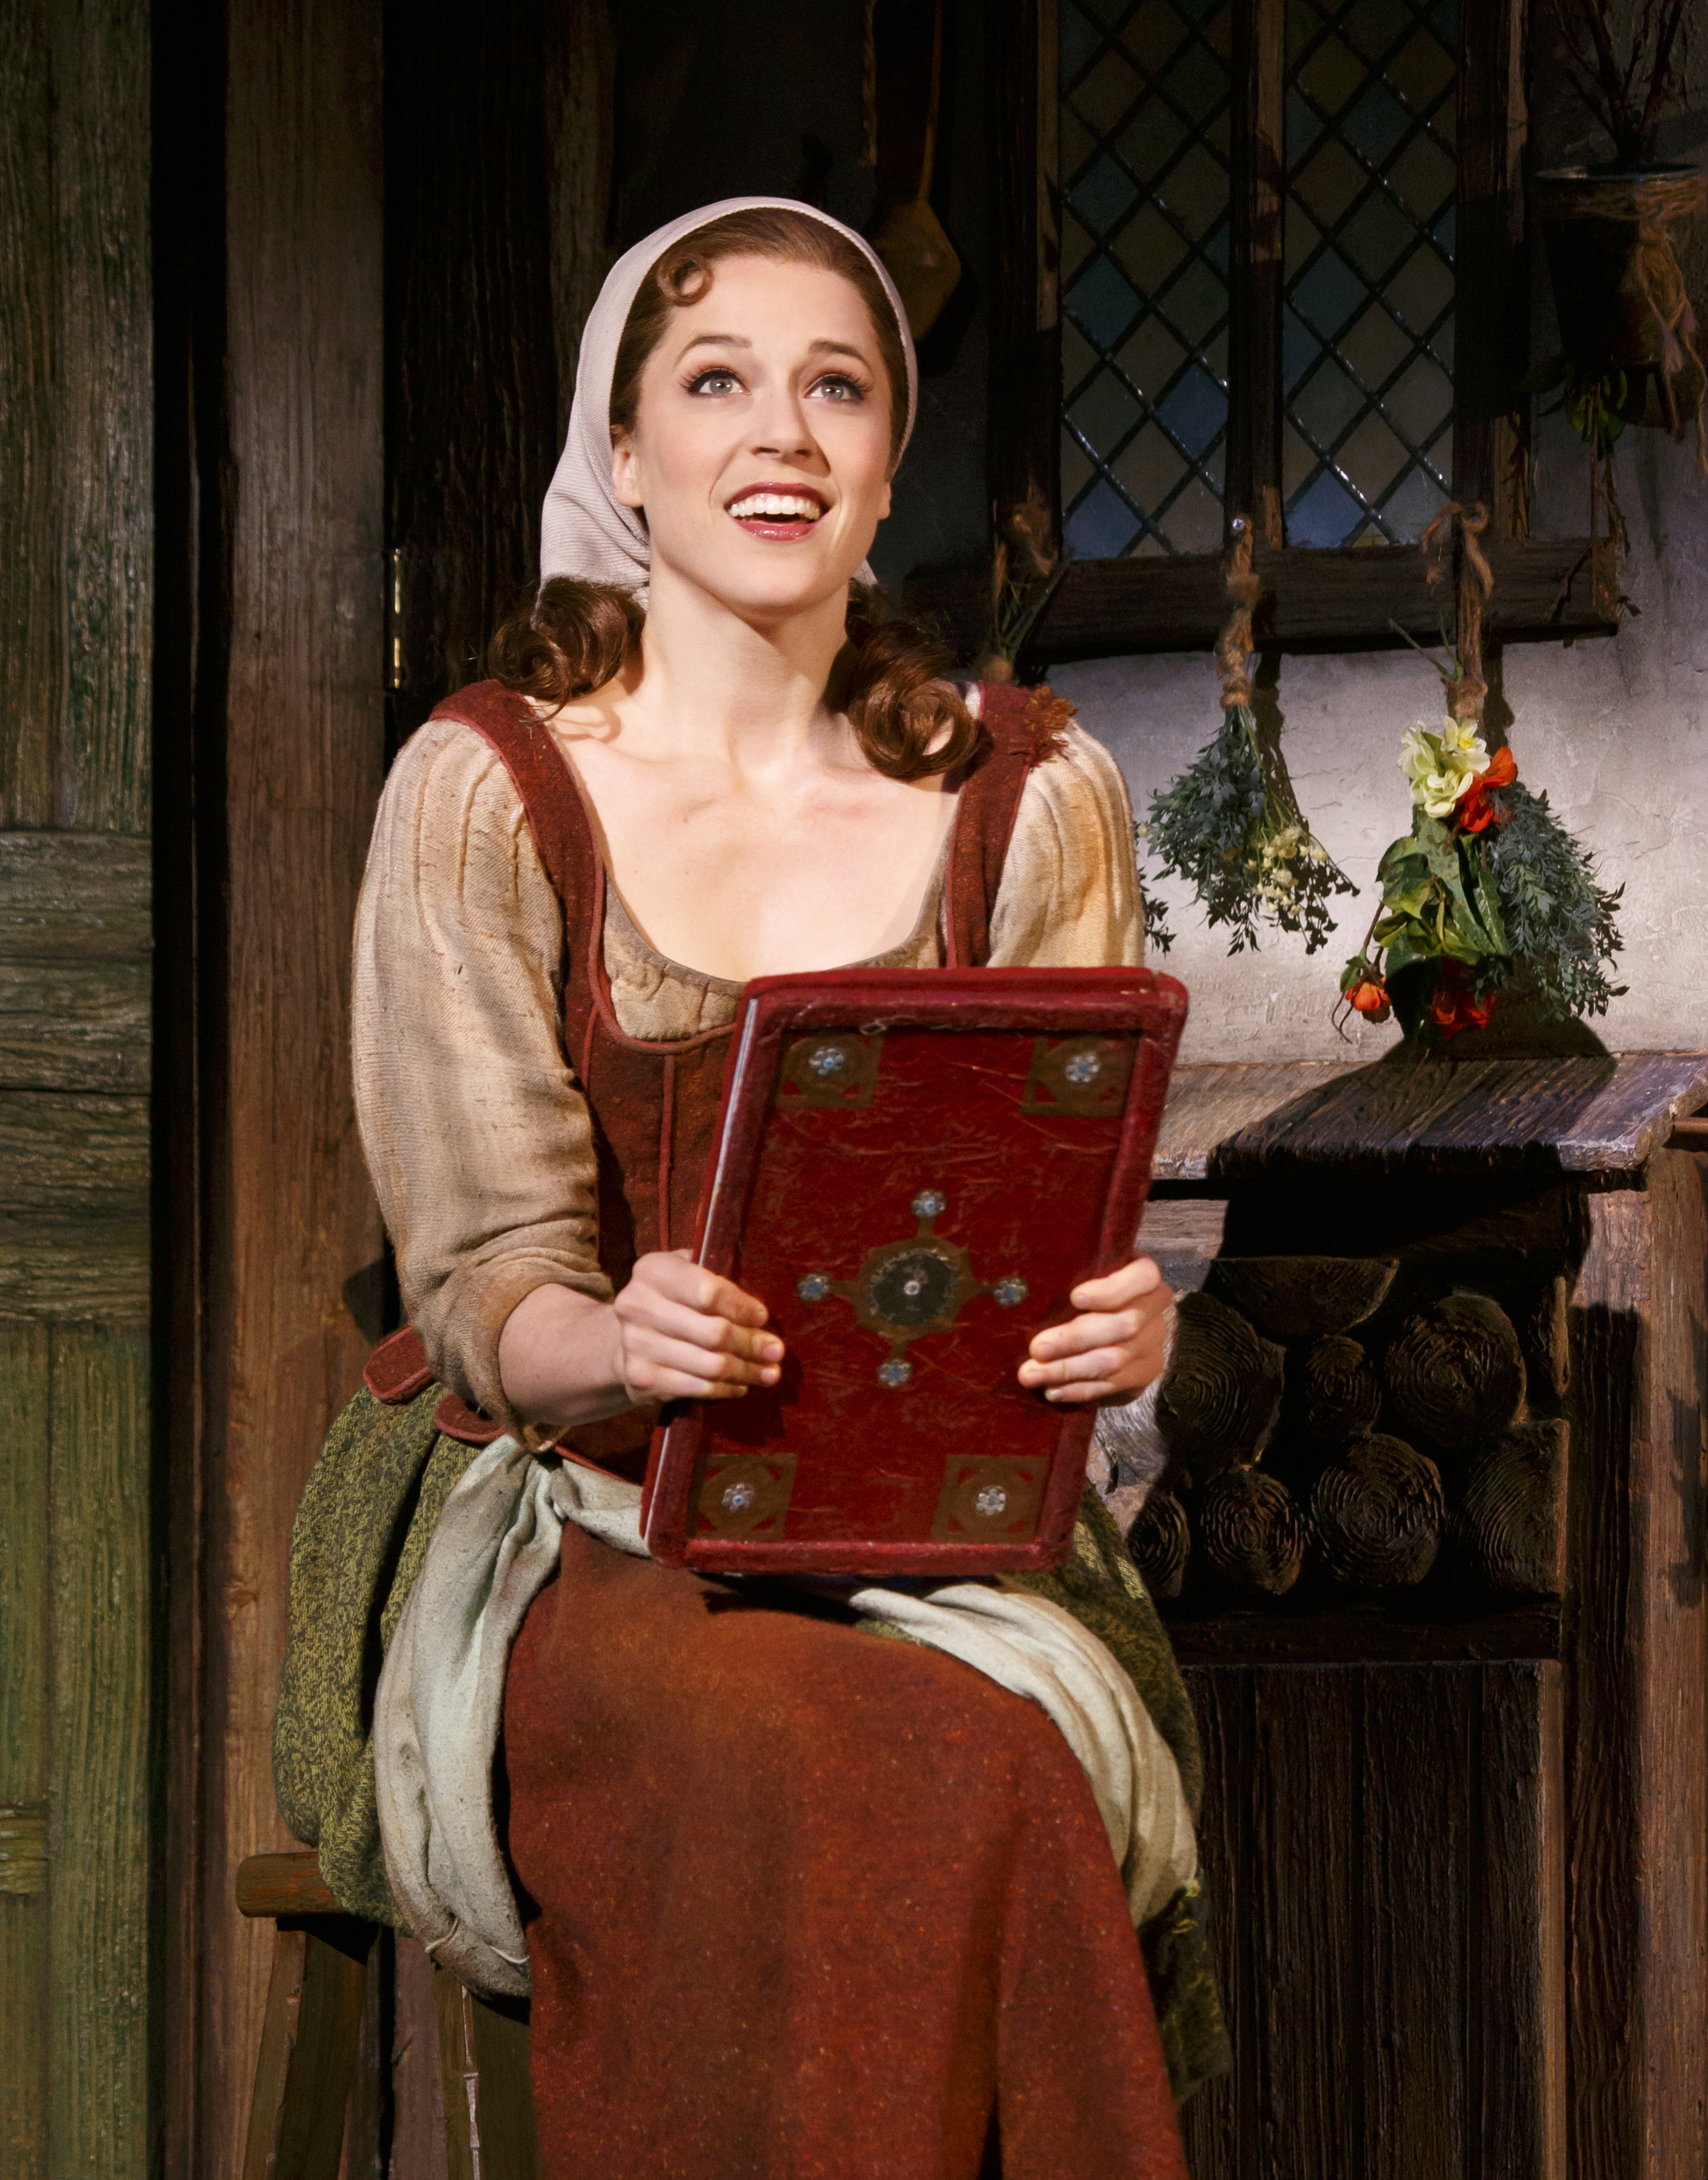 The Cinderella story: too good to be true? Paige Faure reprises her Broadway title role at CLO.